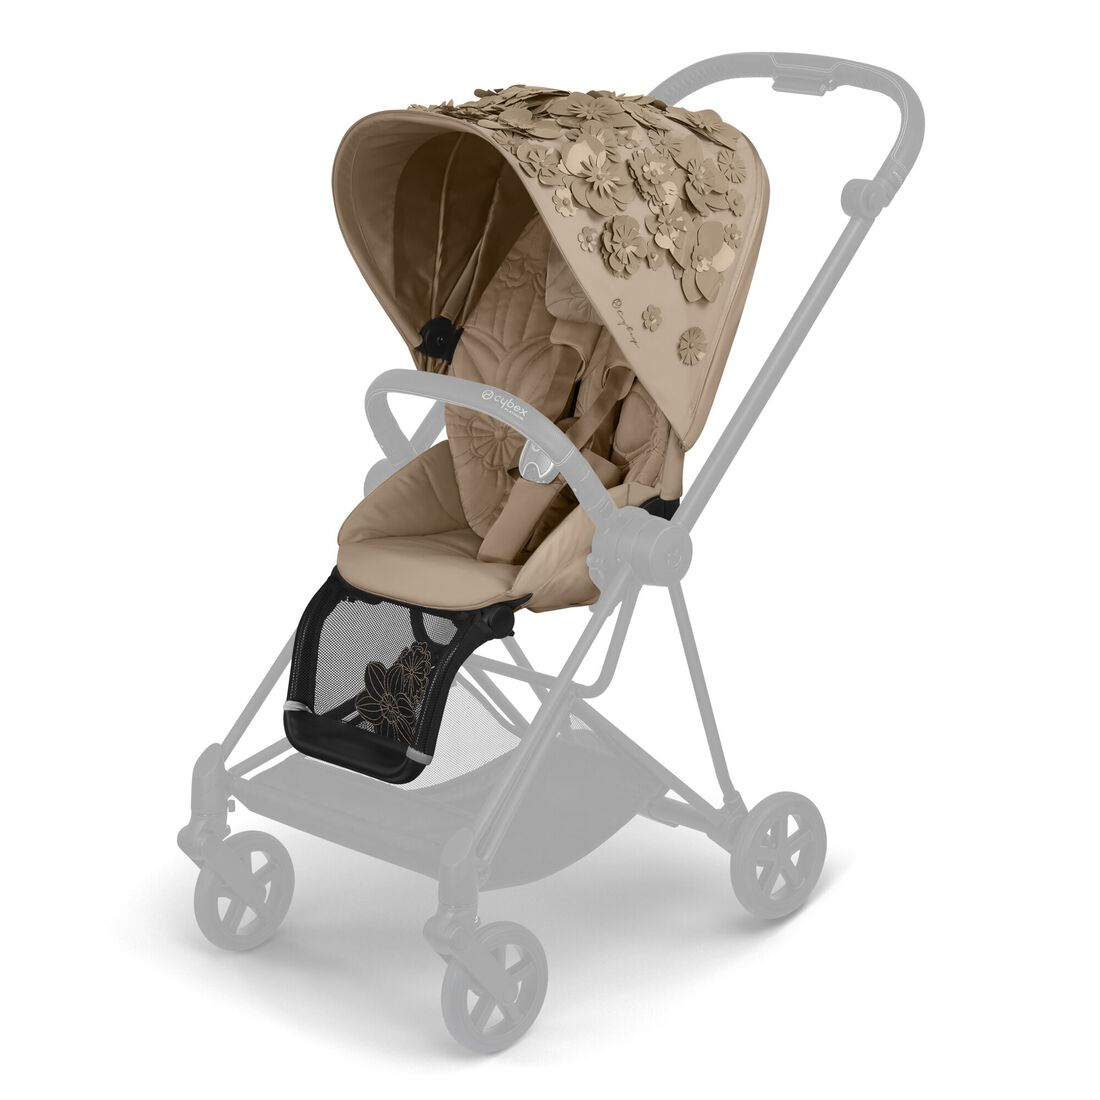 CYBEX Mios Seat Pack - Nude Beige in Nude Beige large image number 1